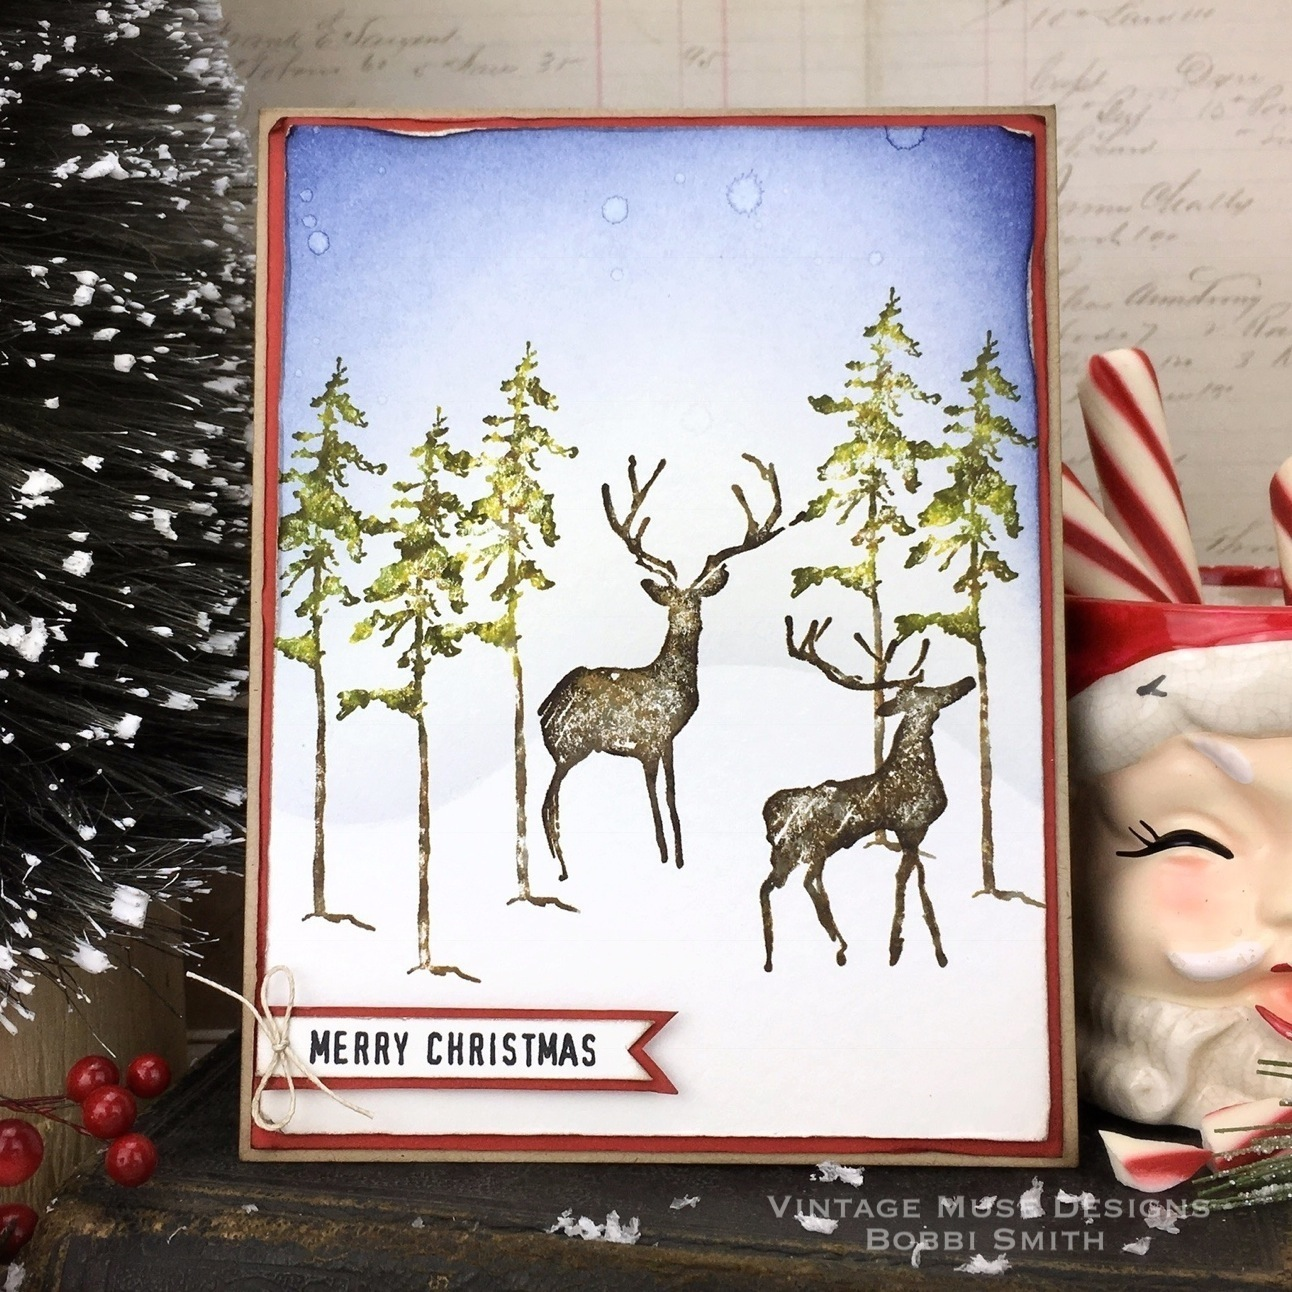 Vintage Muse Designs: Great Outdoors Merry Christmas Card...